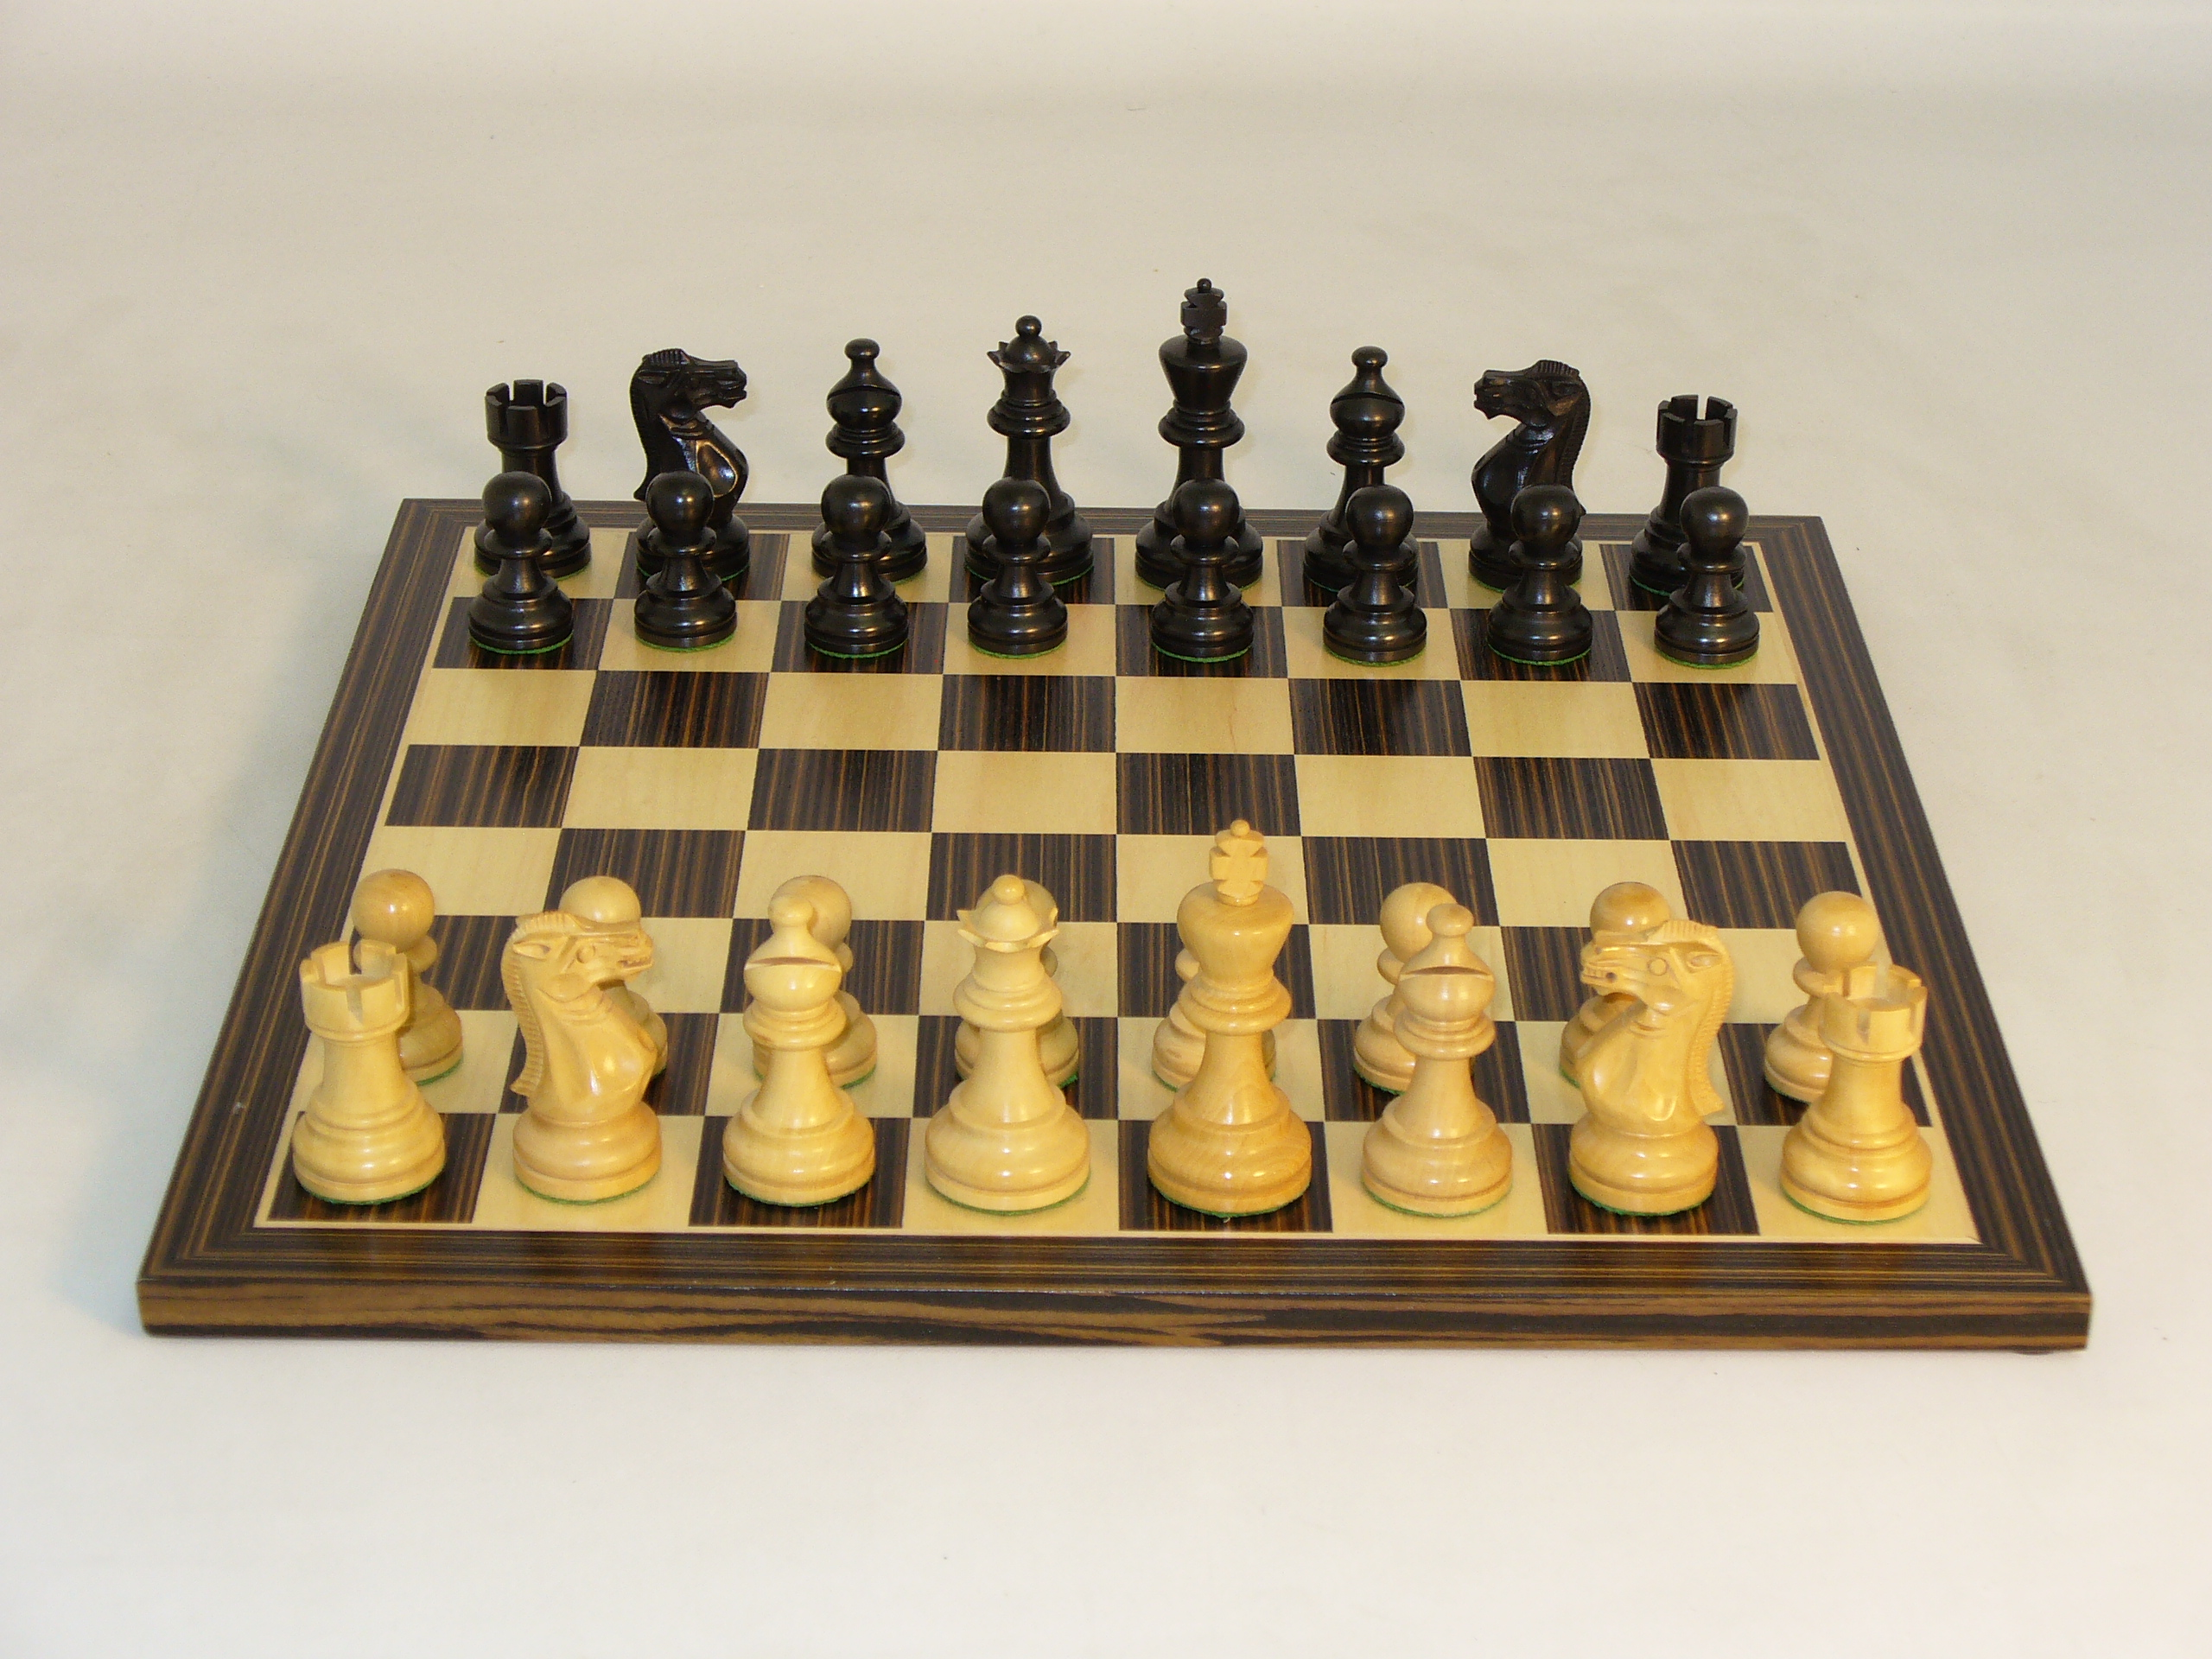 Worldwise Blk American Emperor Chess Set by World Wise Imports